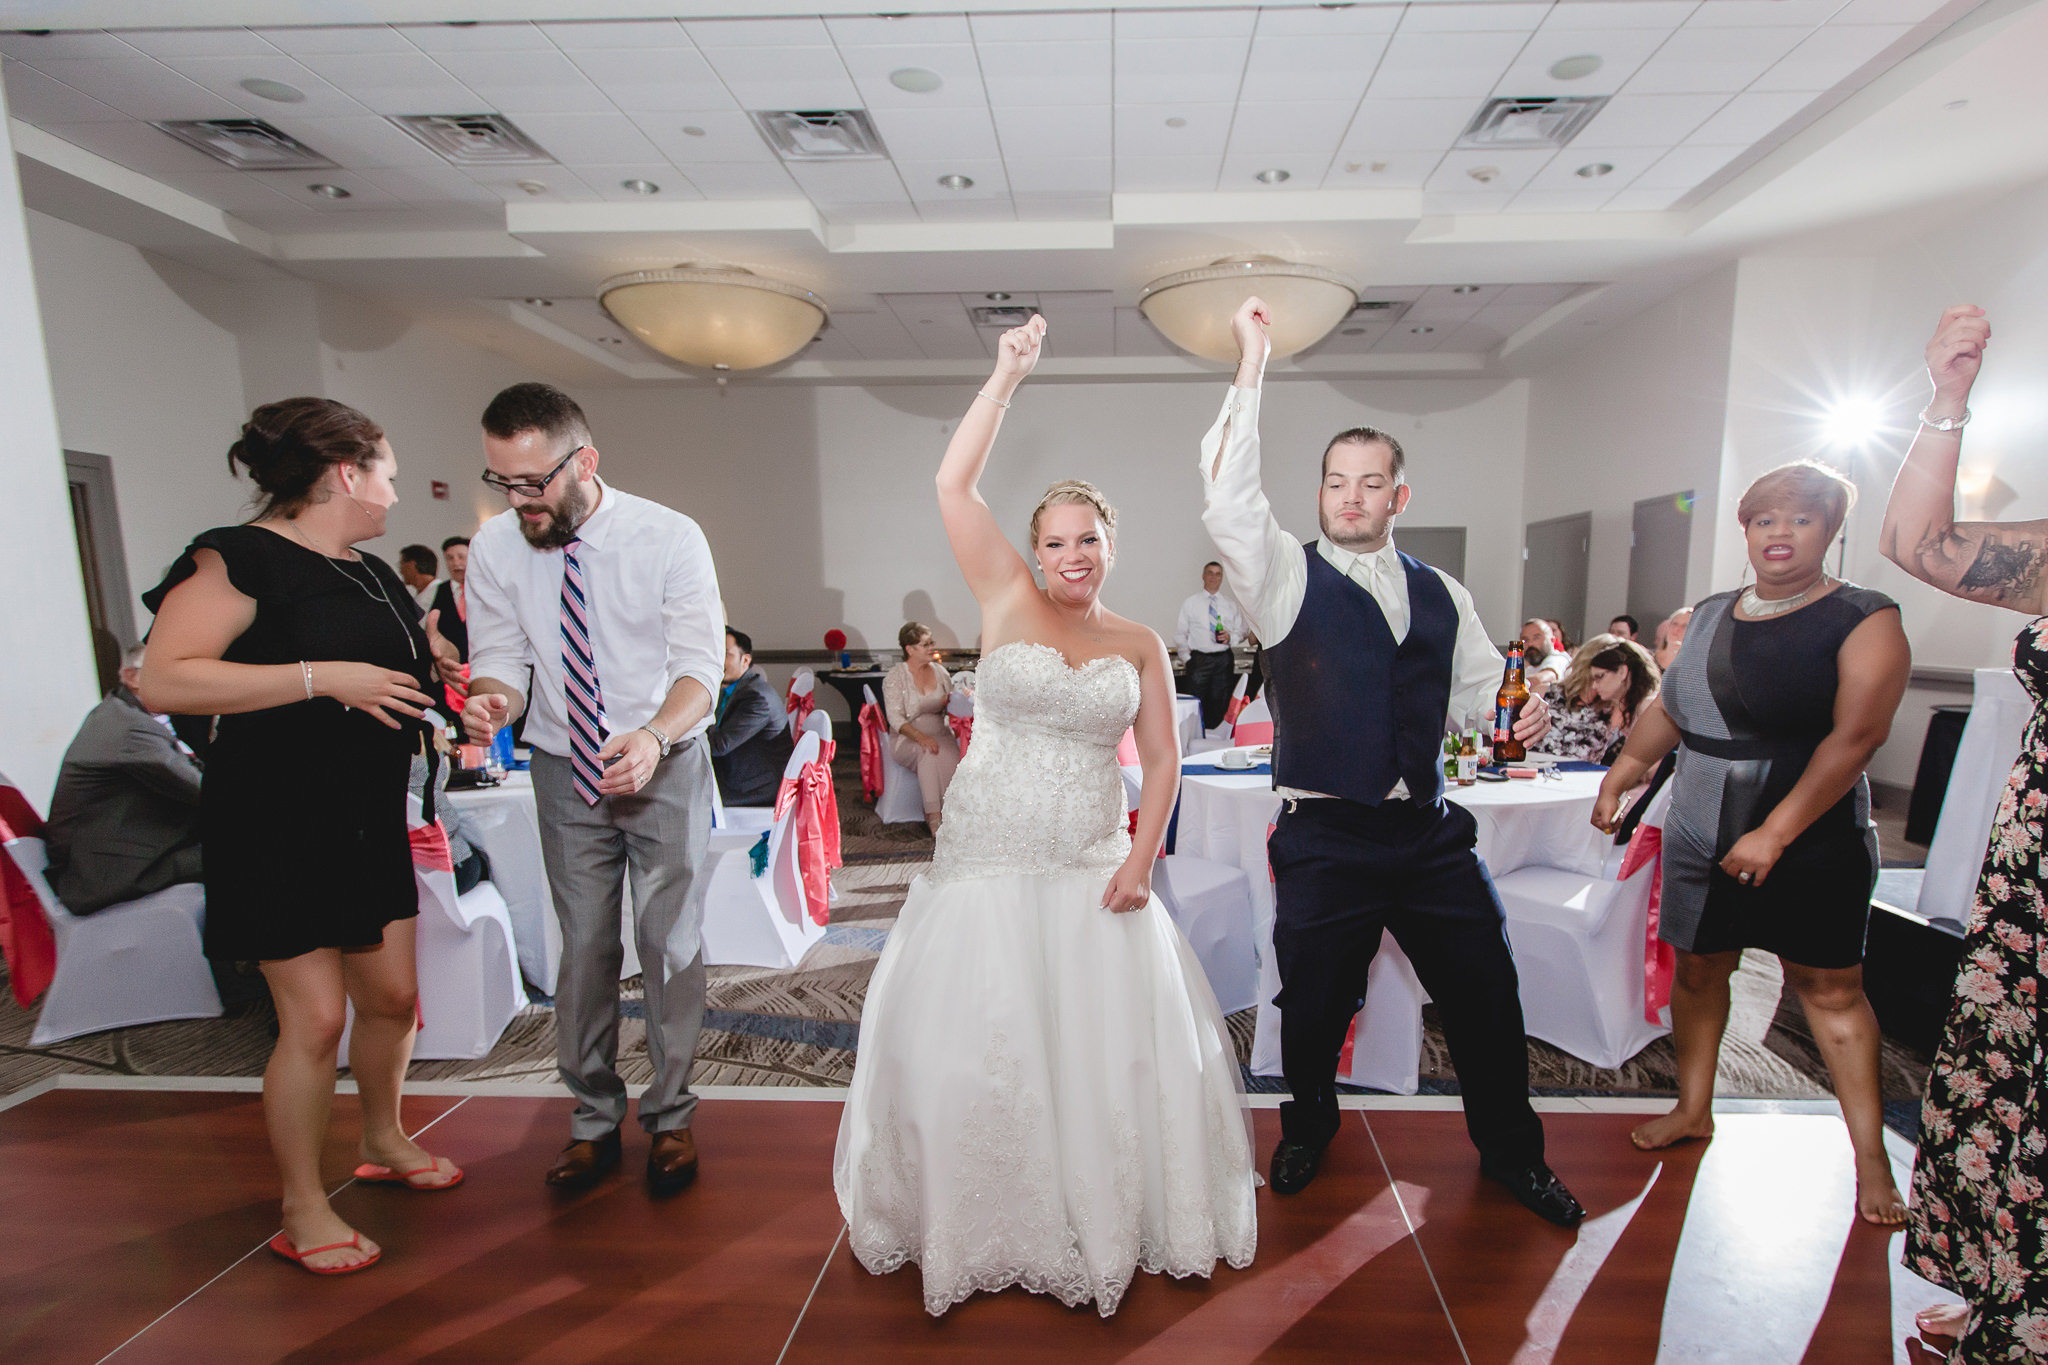 Bride and groom dance with guests at the Pittsburgh Airport Marriott